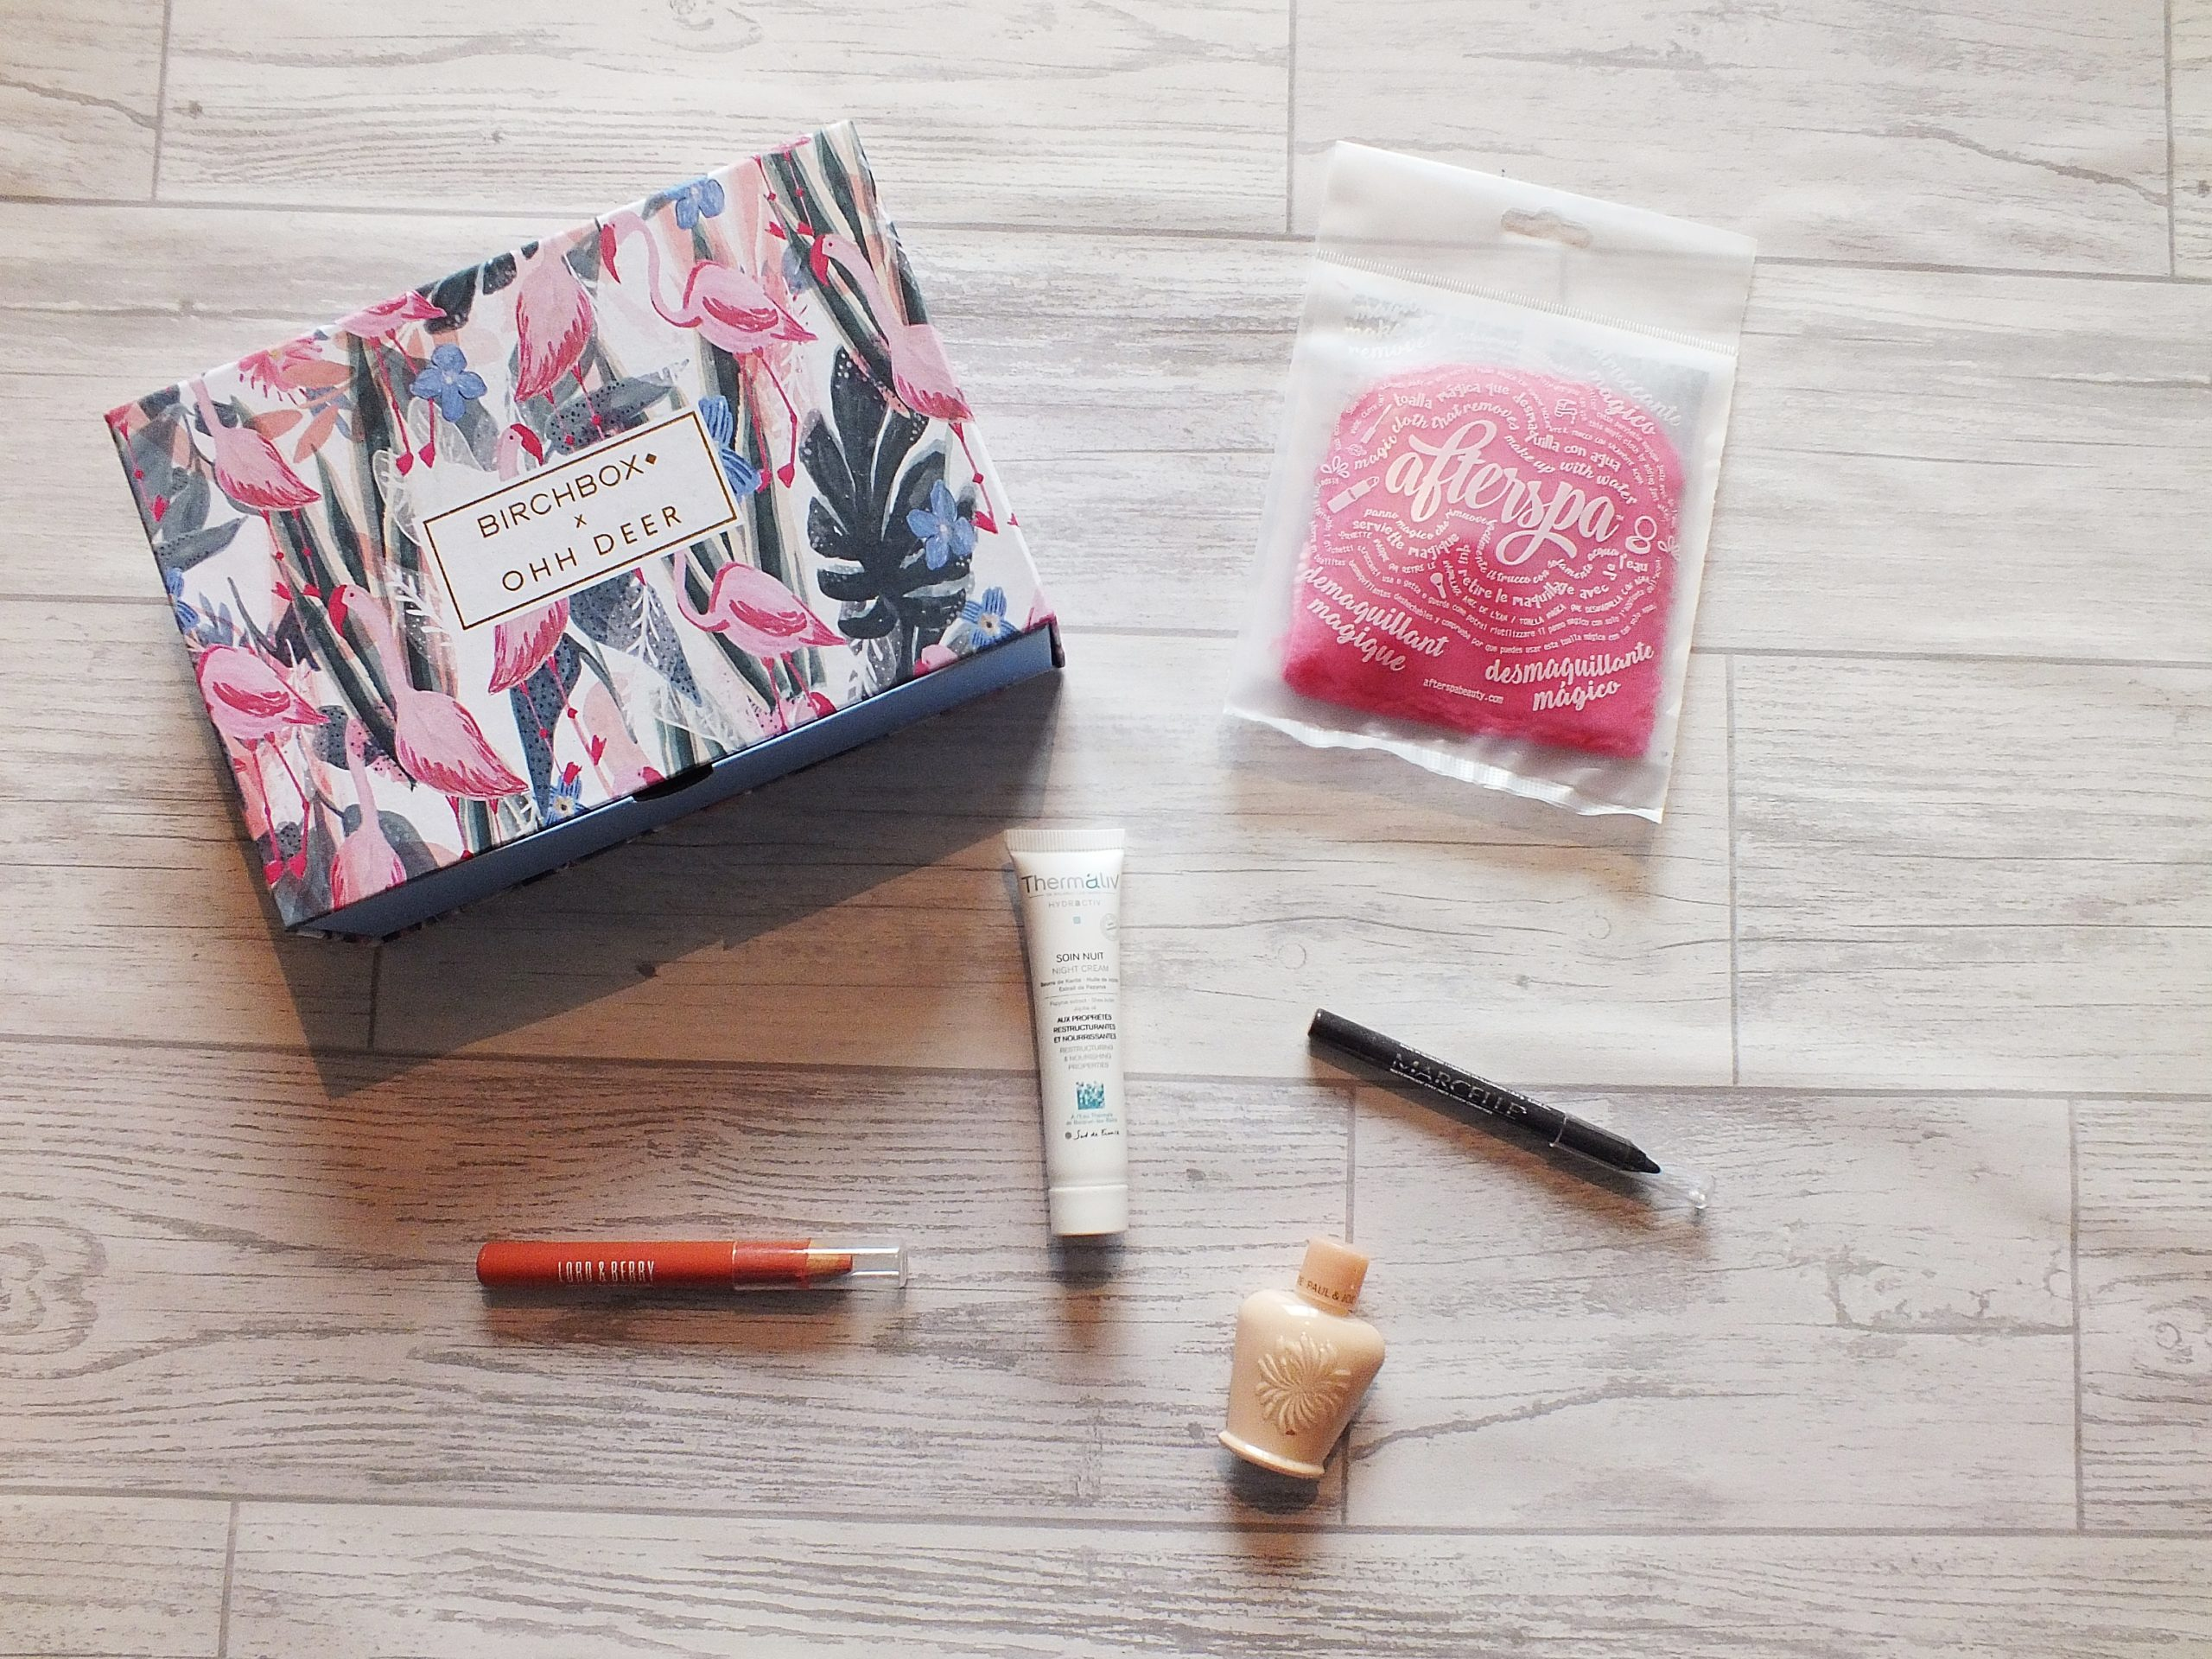 Flatlay image from above showing the contents of the Birchbox and Ohh Deer Collaboration box from January 2018